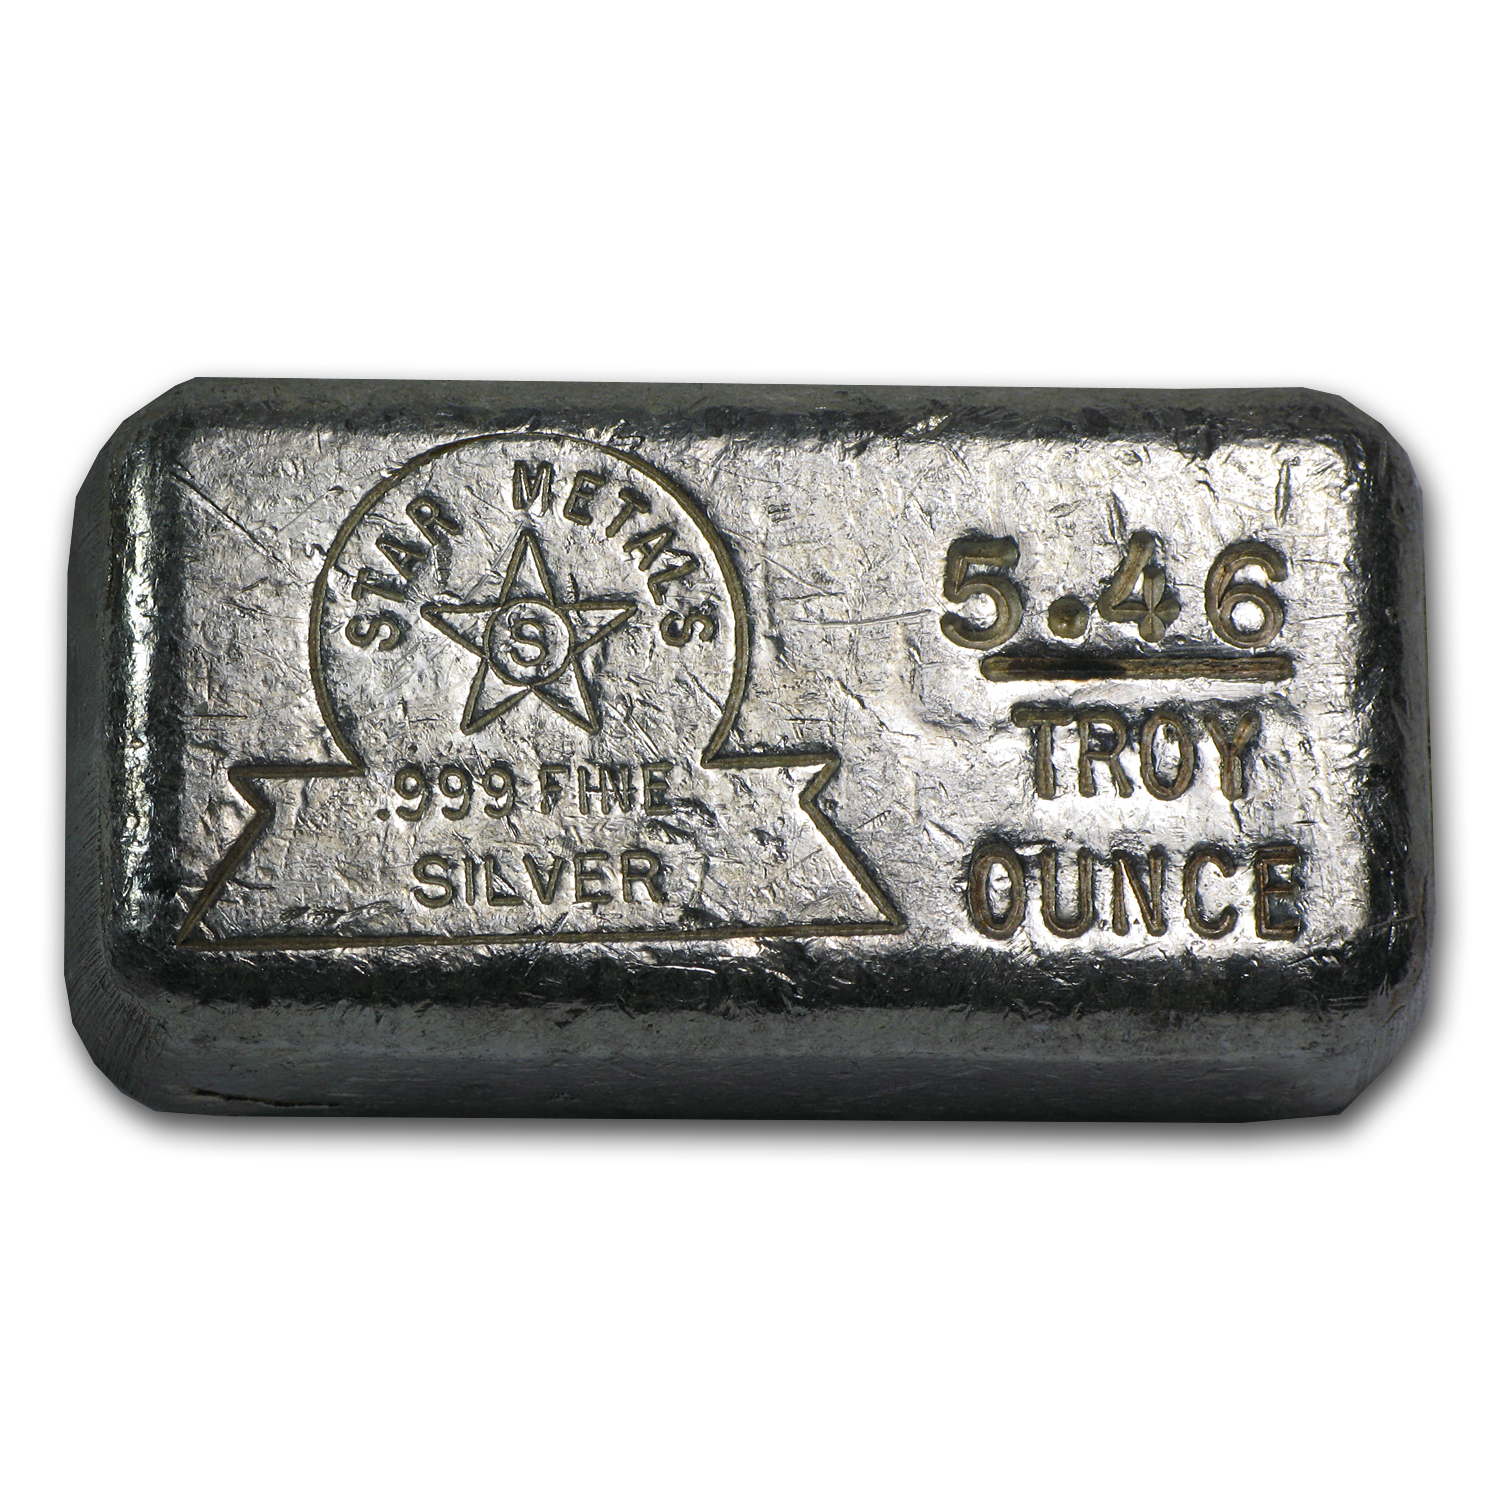 5.46 oz Silver Bars - Star Metals